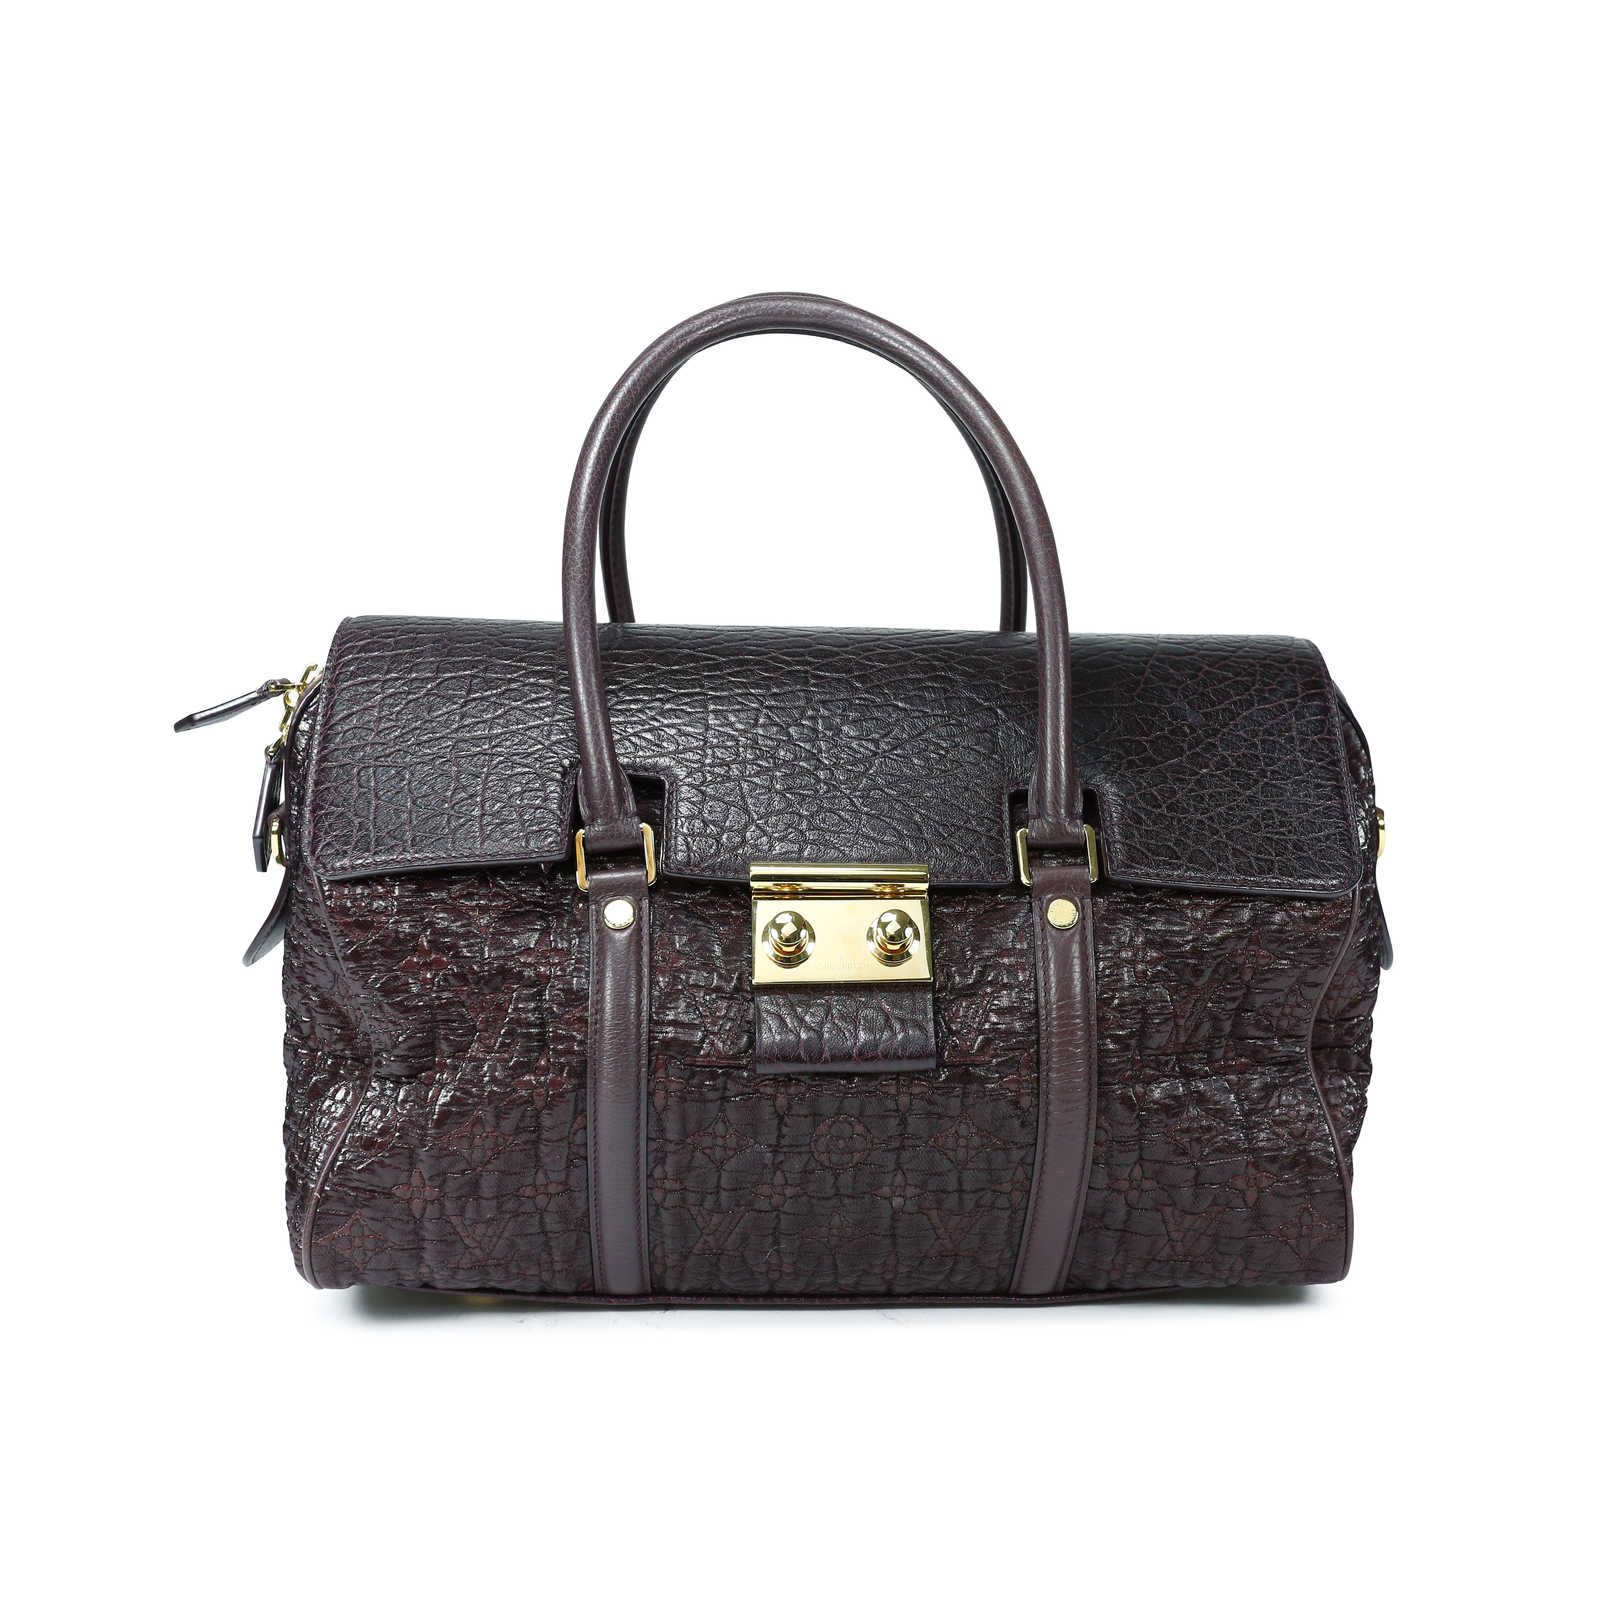 Tap to expand · Authentic Second Hand Louis Vuitton Pebbled Leather and  Fabric Bag (PSS-143-00001 ... 6128868f47c73